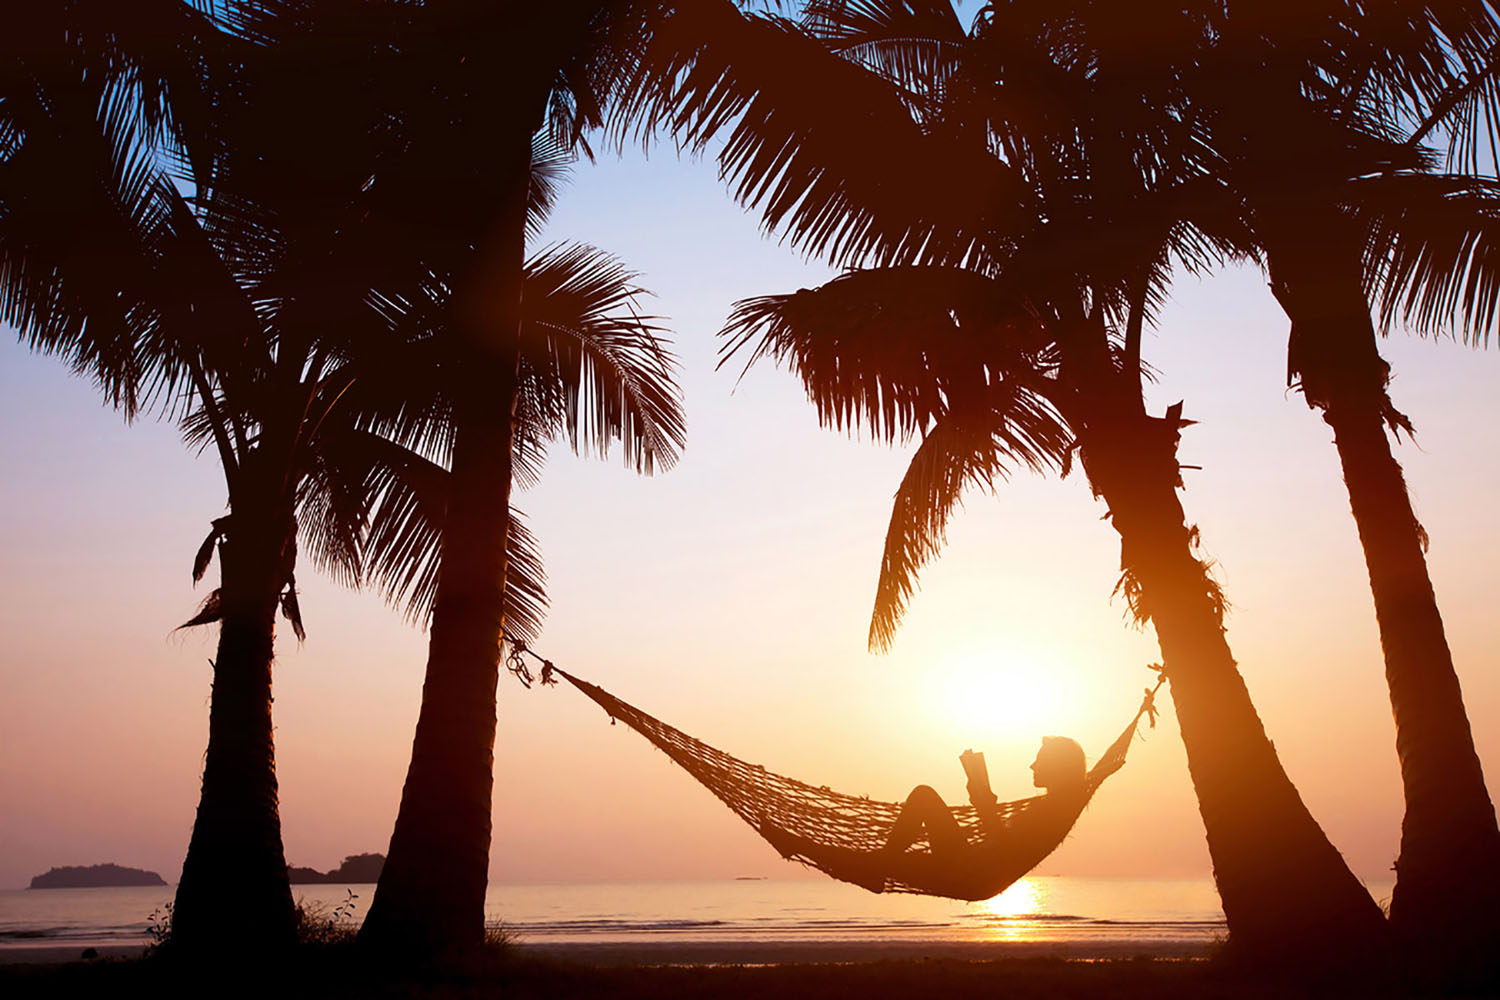 A lady reads a book while laying a hammock at sunset